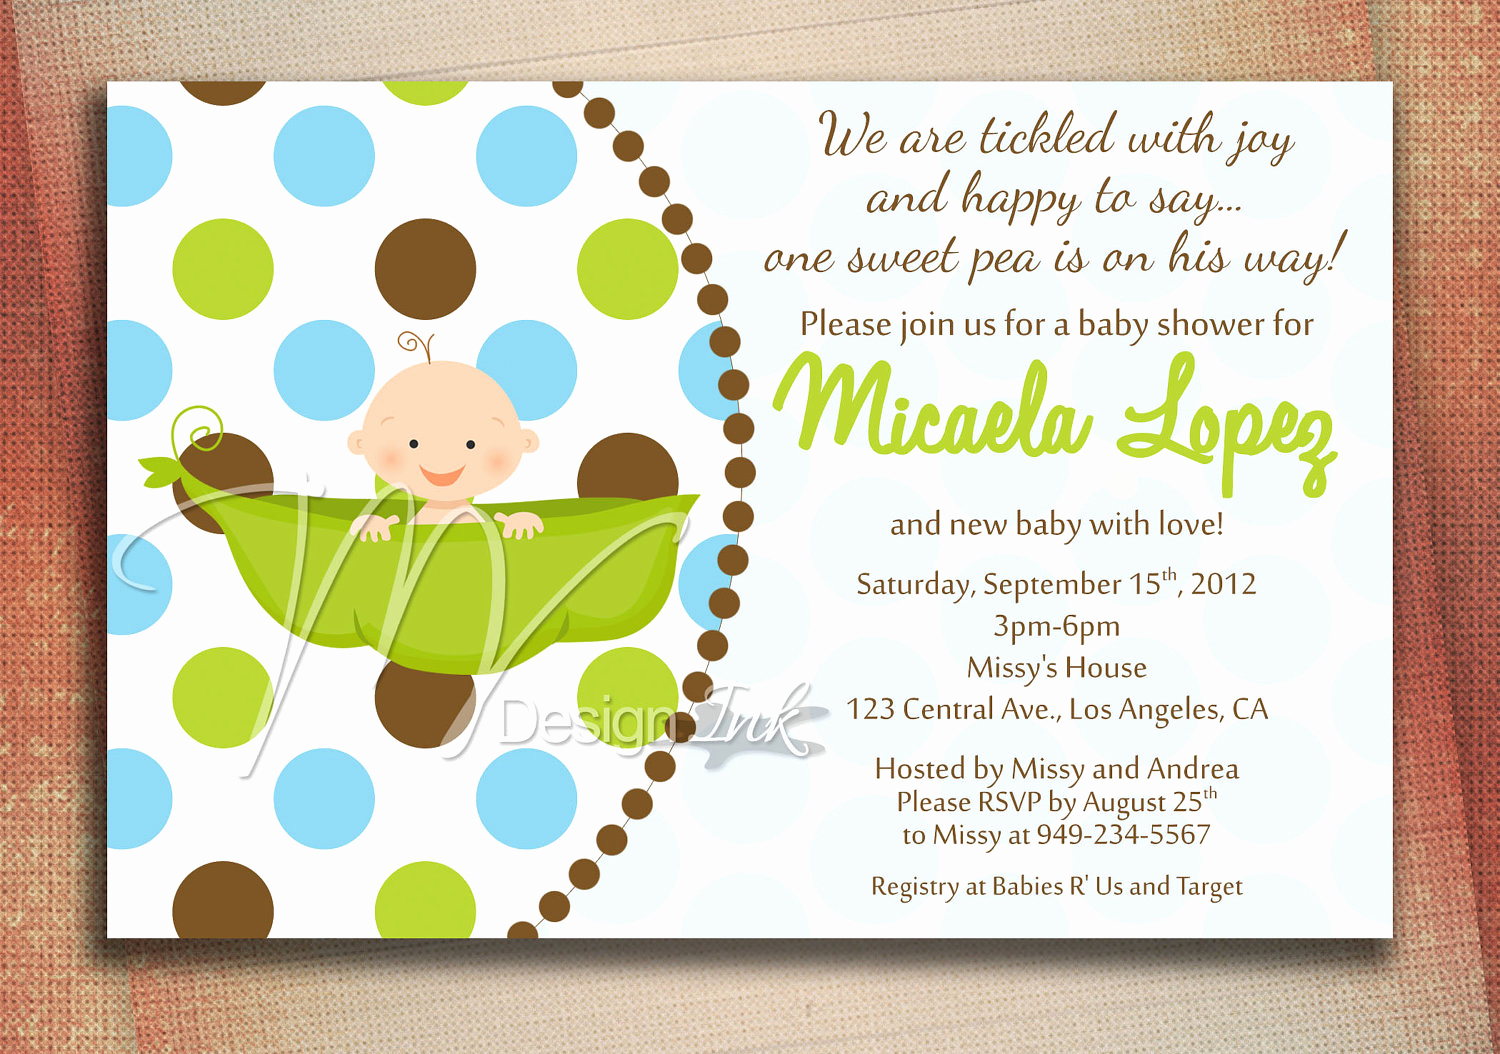 Baby Shower Invitation Example New Pea In A Pod Baby Shower Invitation Baby In A Pod by